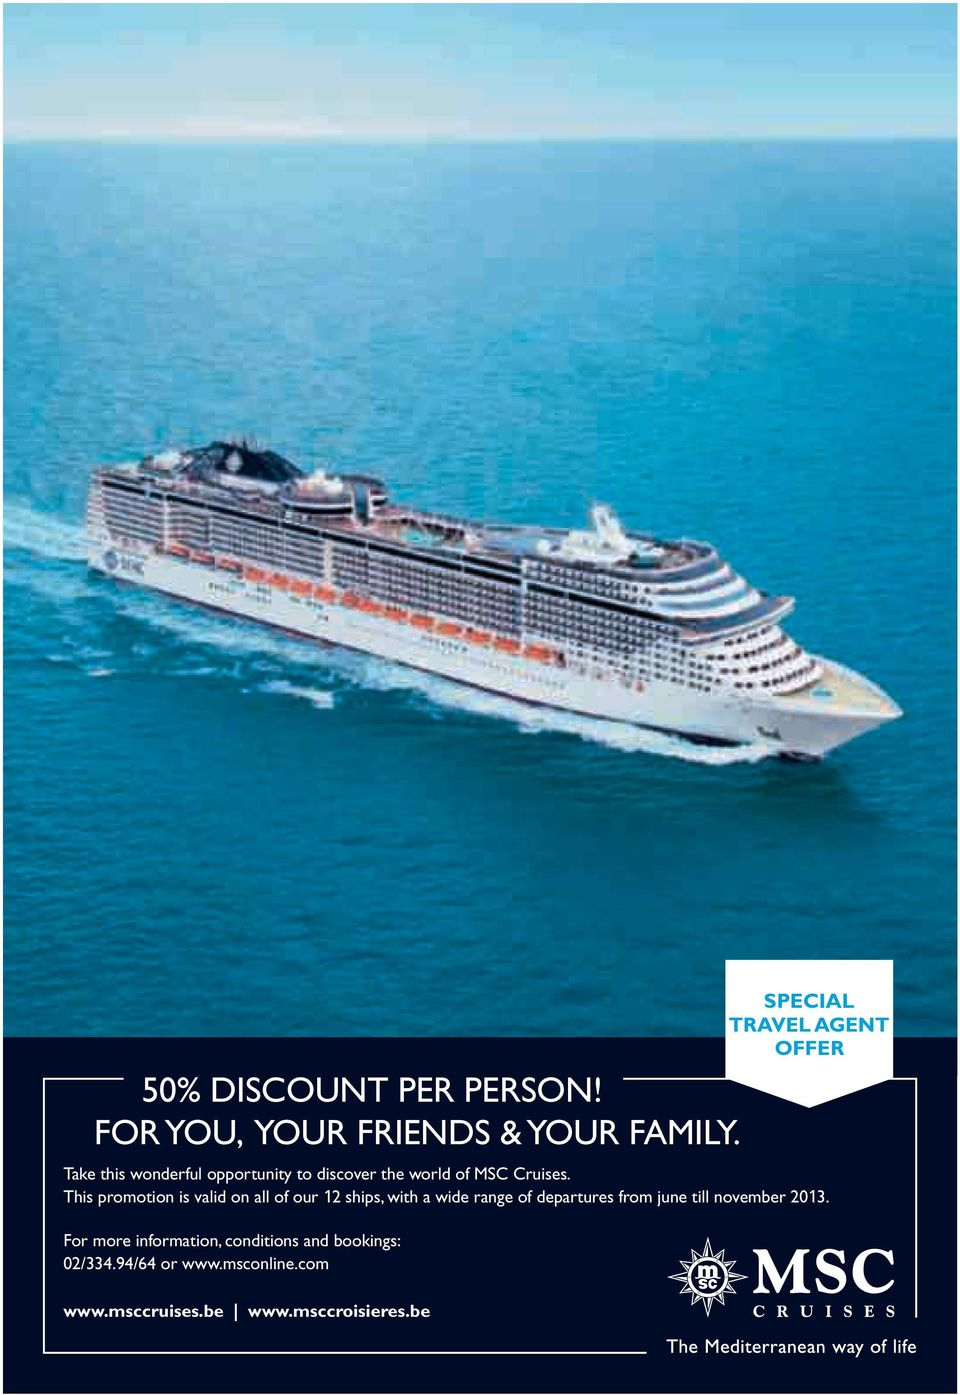 This promotion is valid on all of our 12 ships, with a wide range of departures from june till